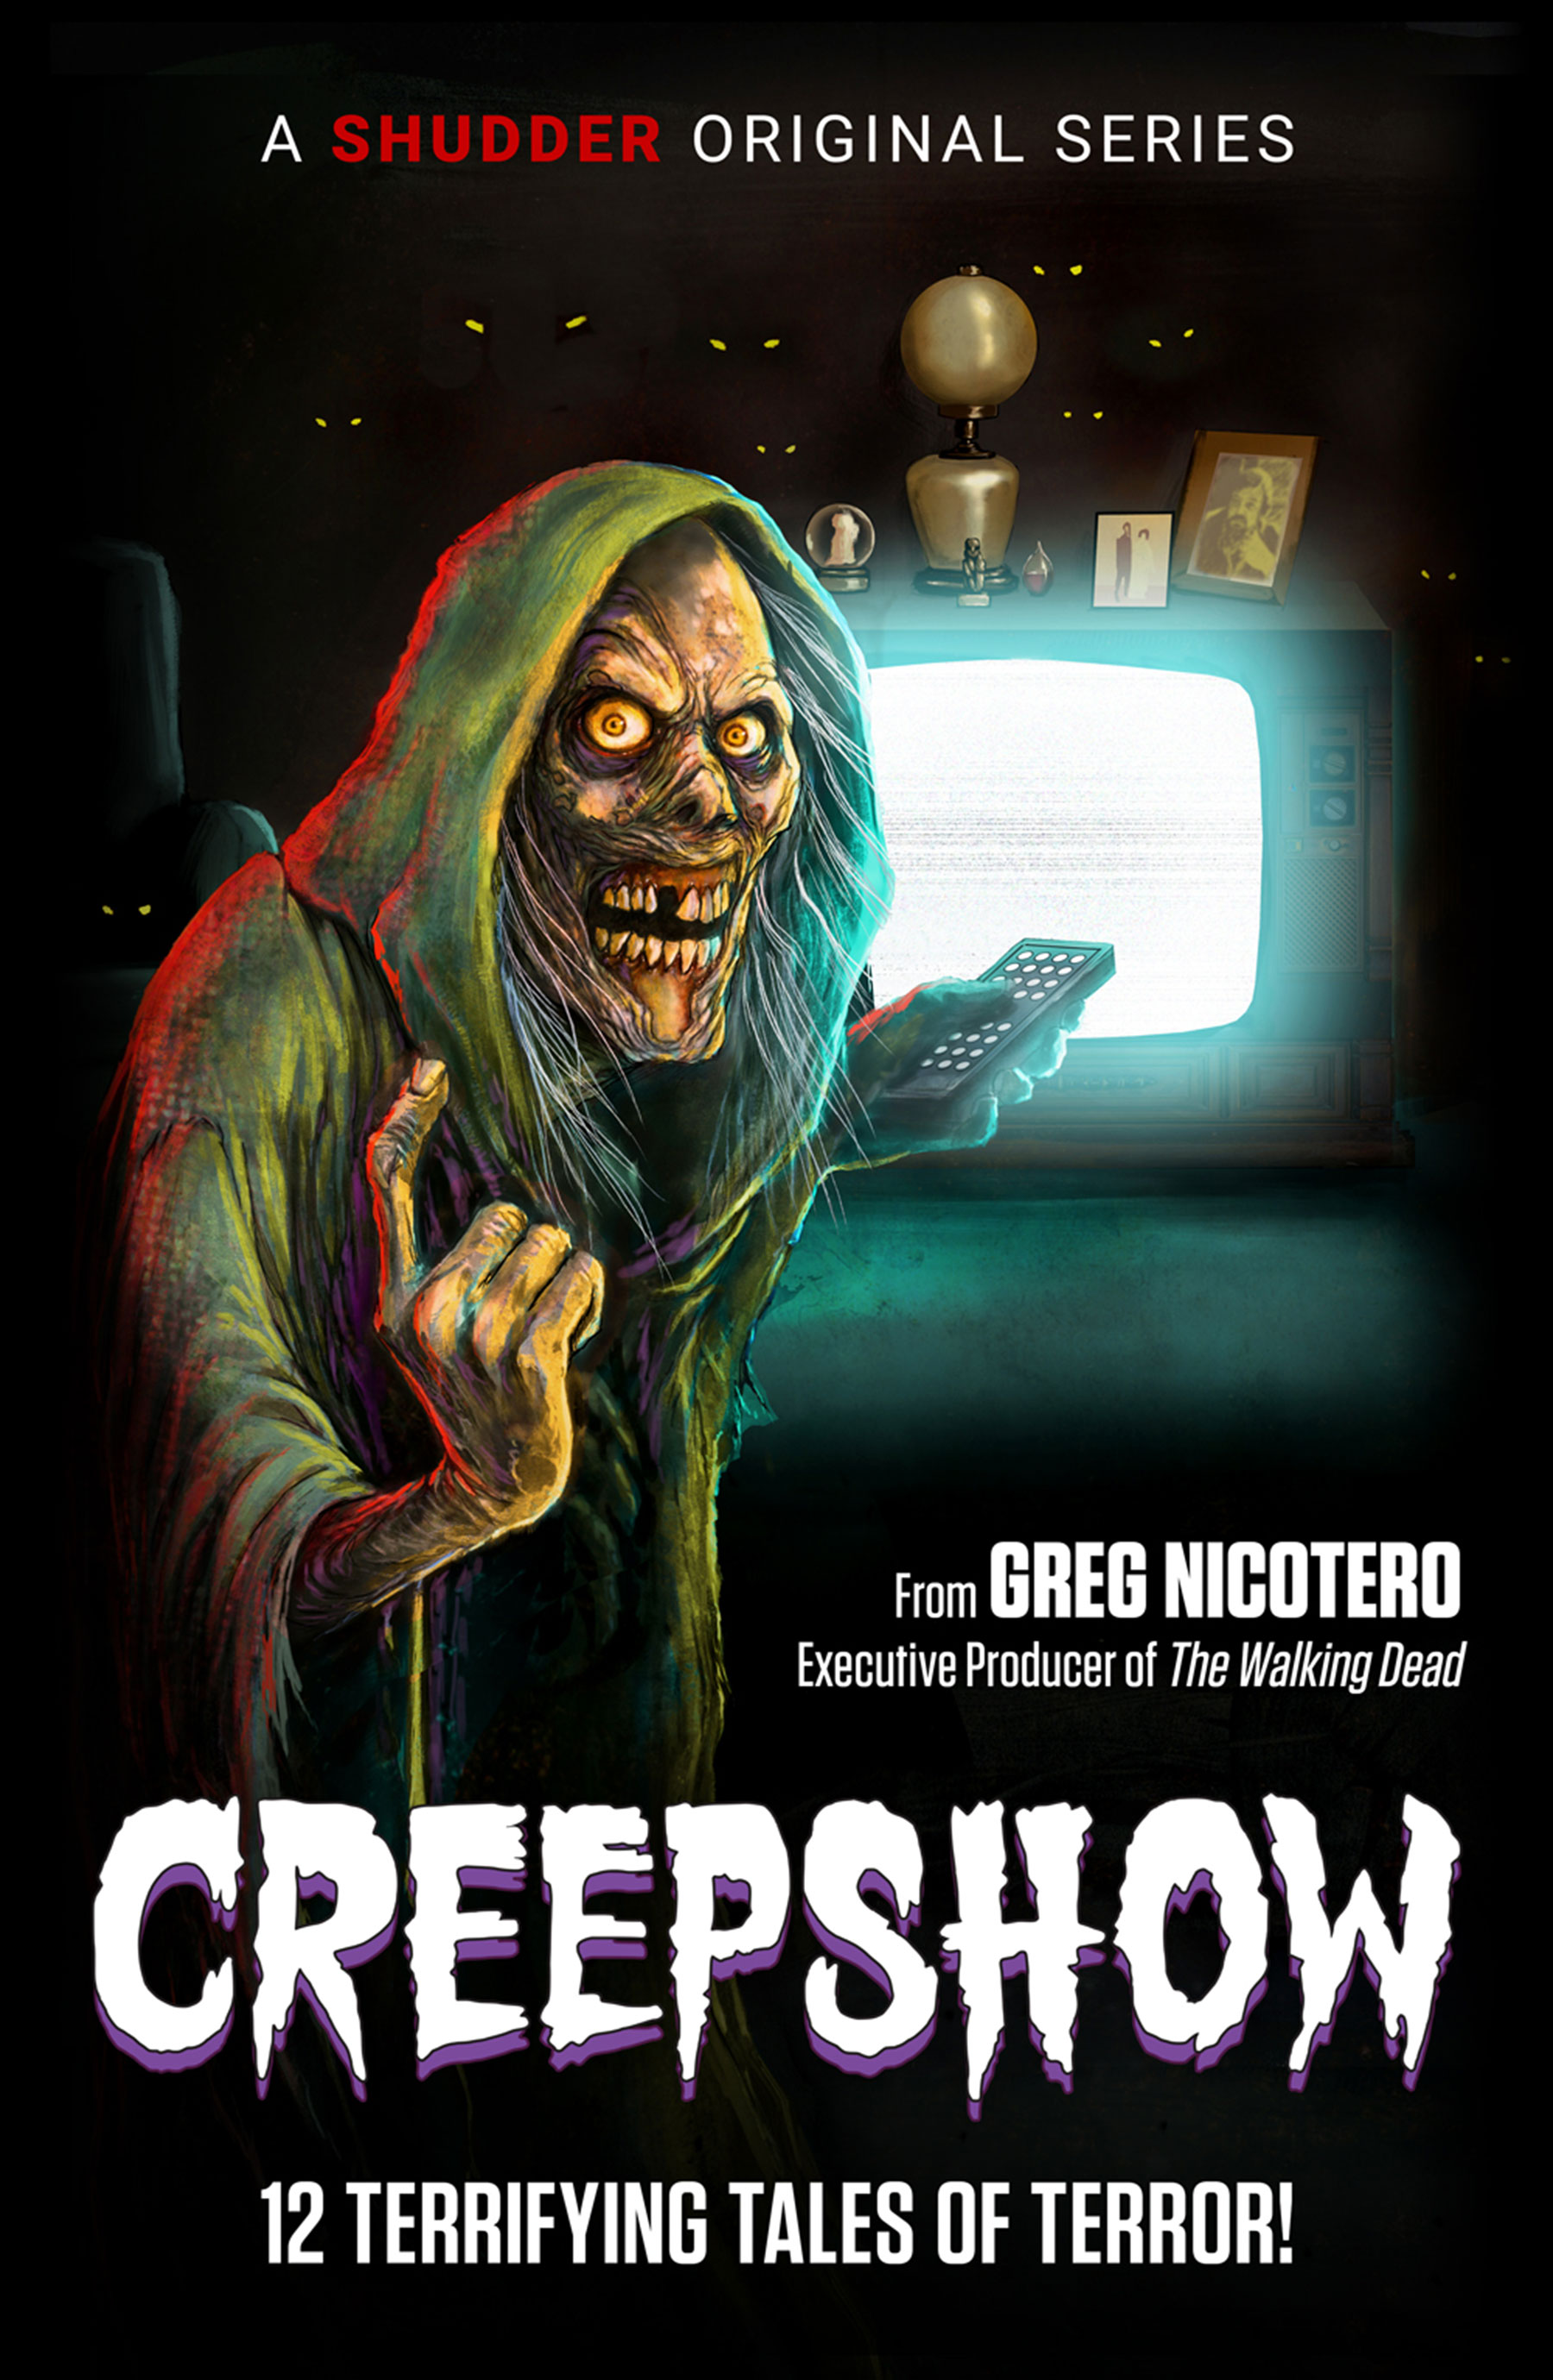 Creepshow Official Trailer, Shudder